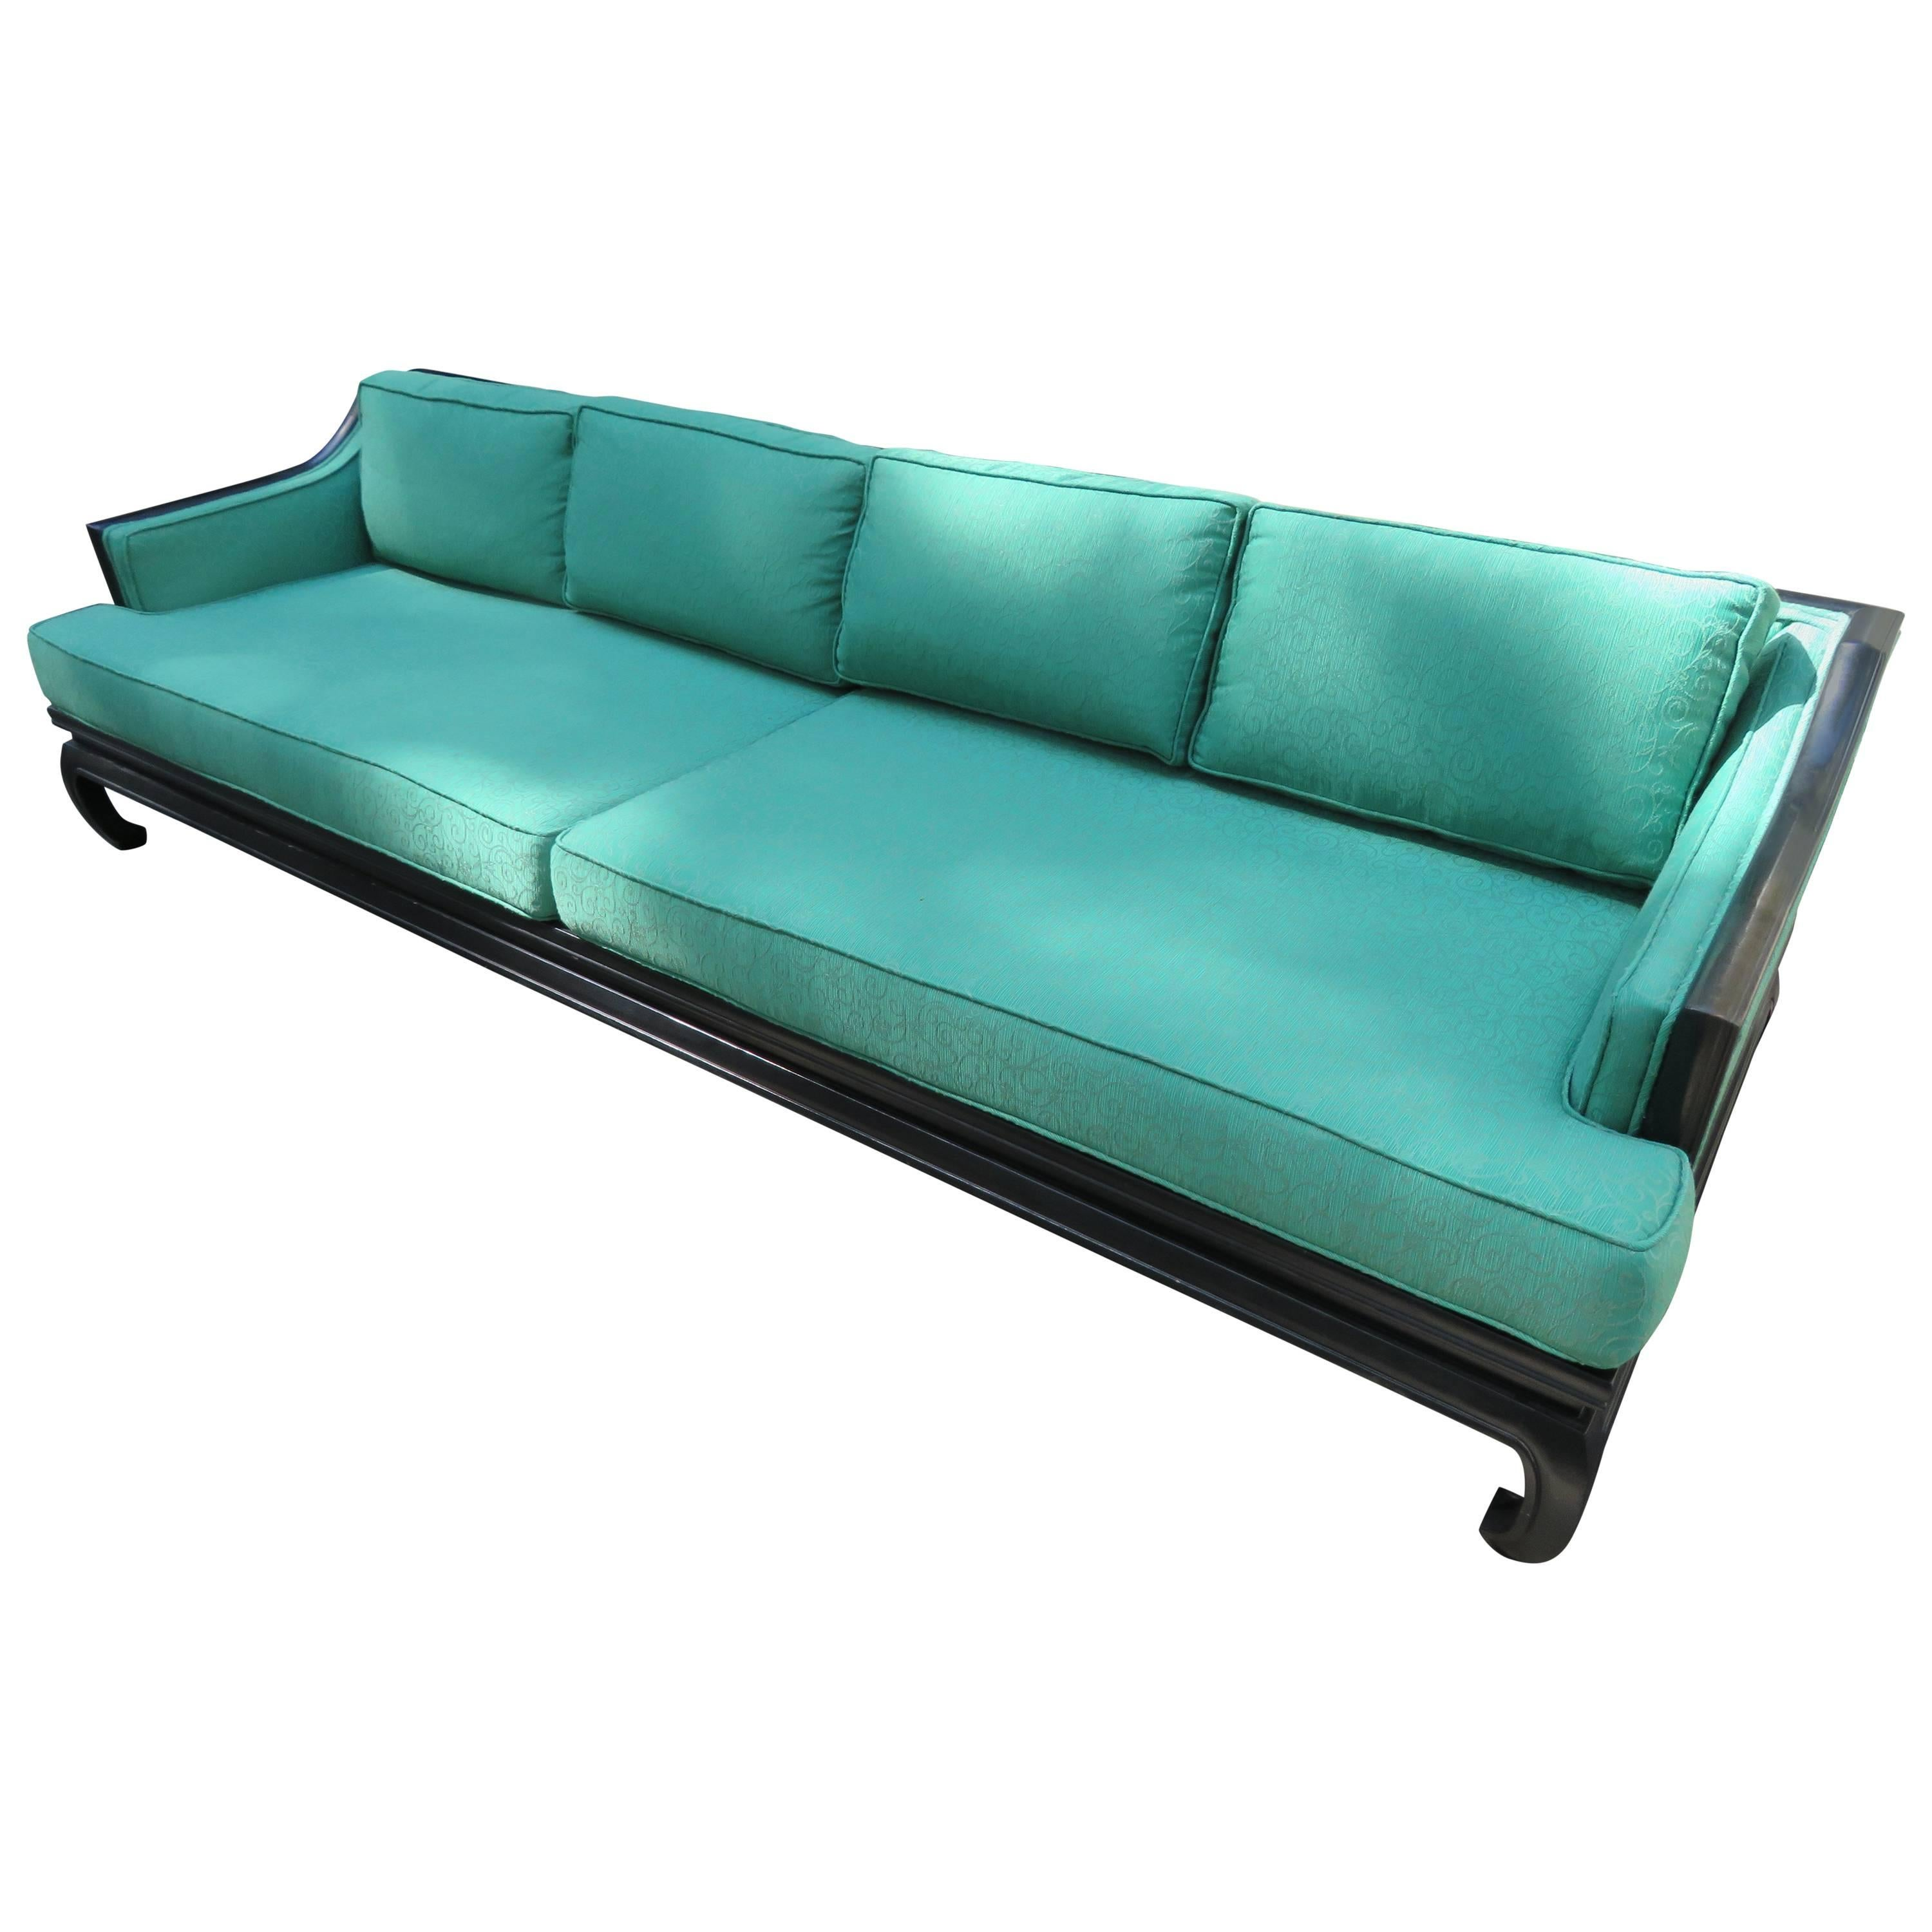 Bon Gorgeous Asian Modern Michael Taylor Style Chinoiserie Sofa Midcentury For  Sale